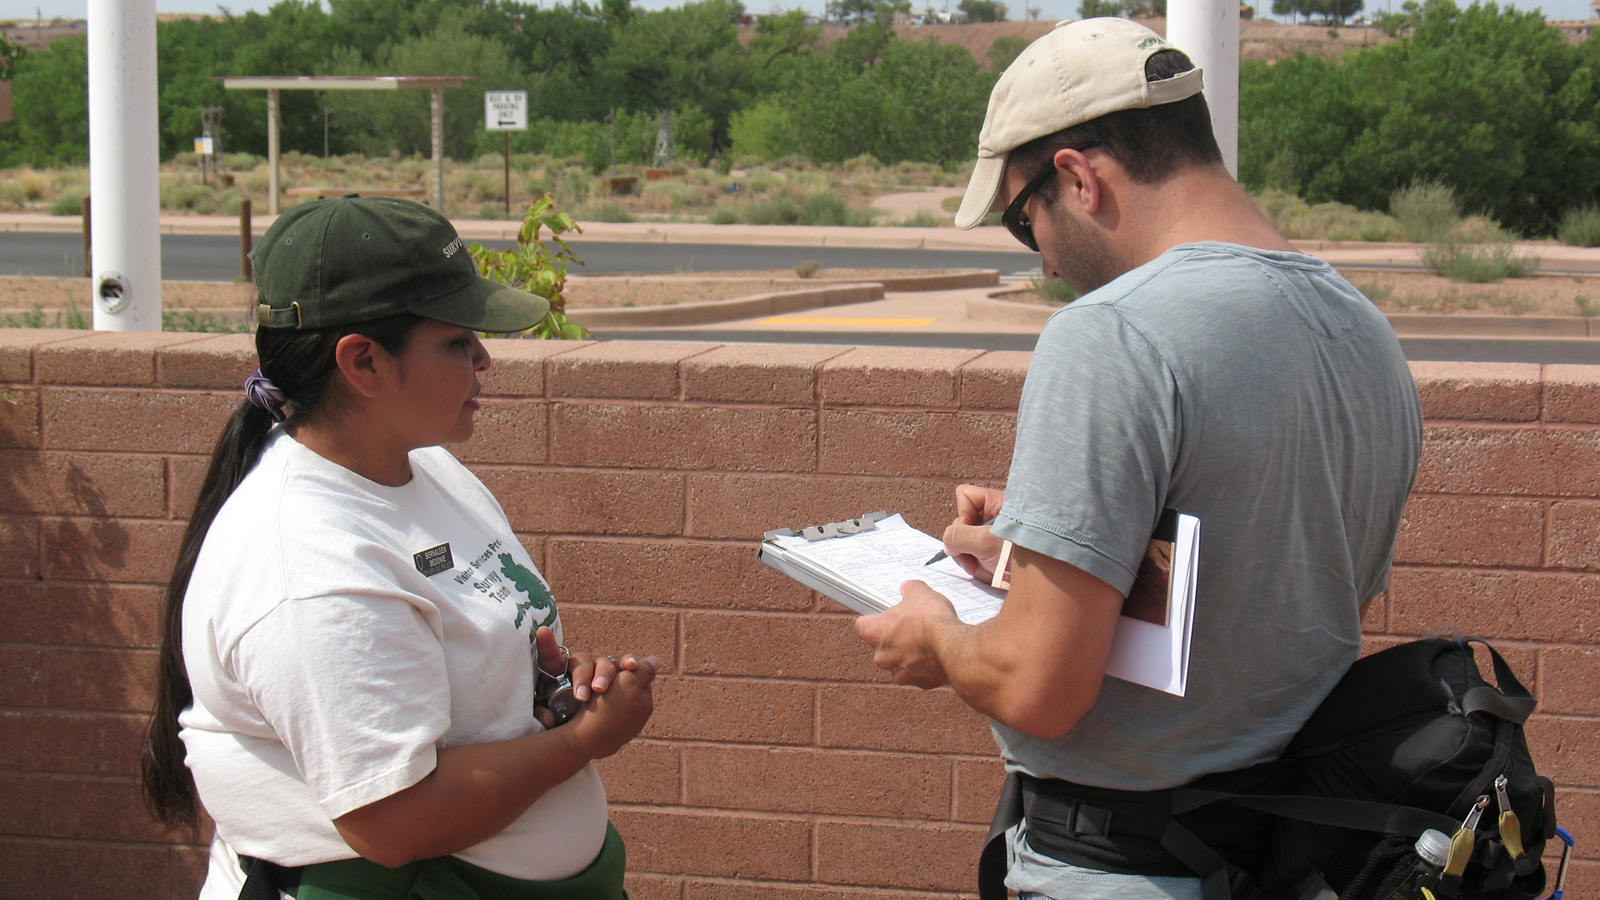 PSU interviewers collecting data in the field